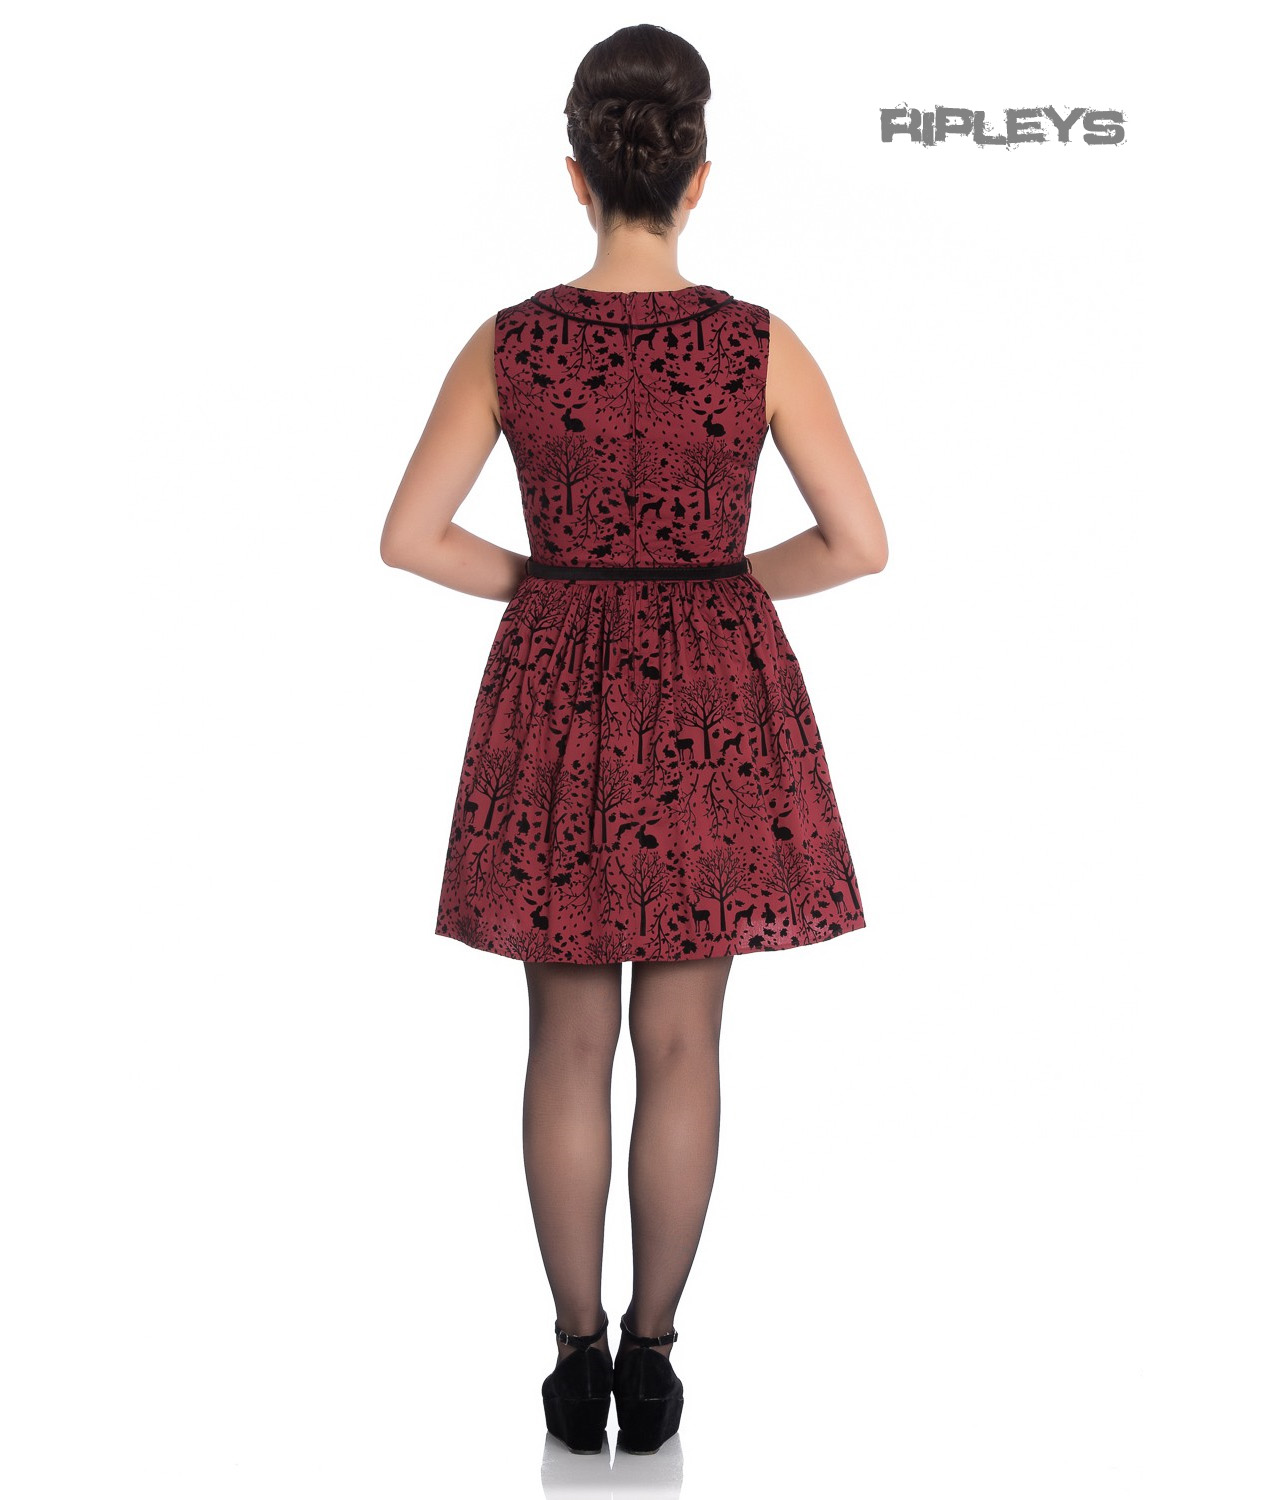 Hell-Bunny-50s-Mini-Skater-Dress-Woodland-Trees-SHERWOOD-Black-Red-All-Sizes thumbnail 20